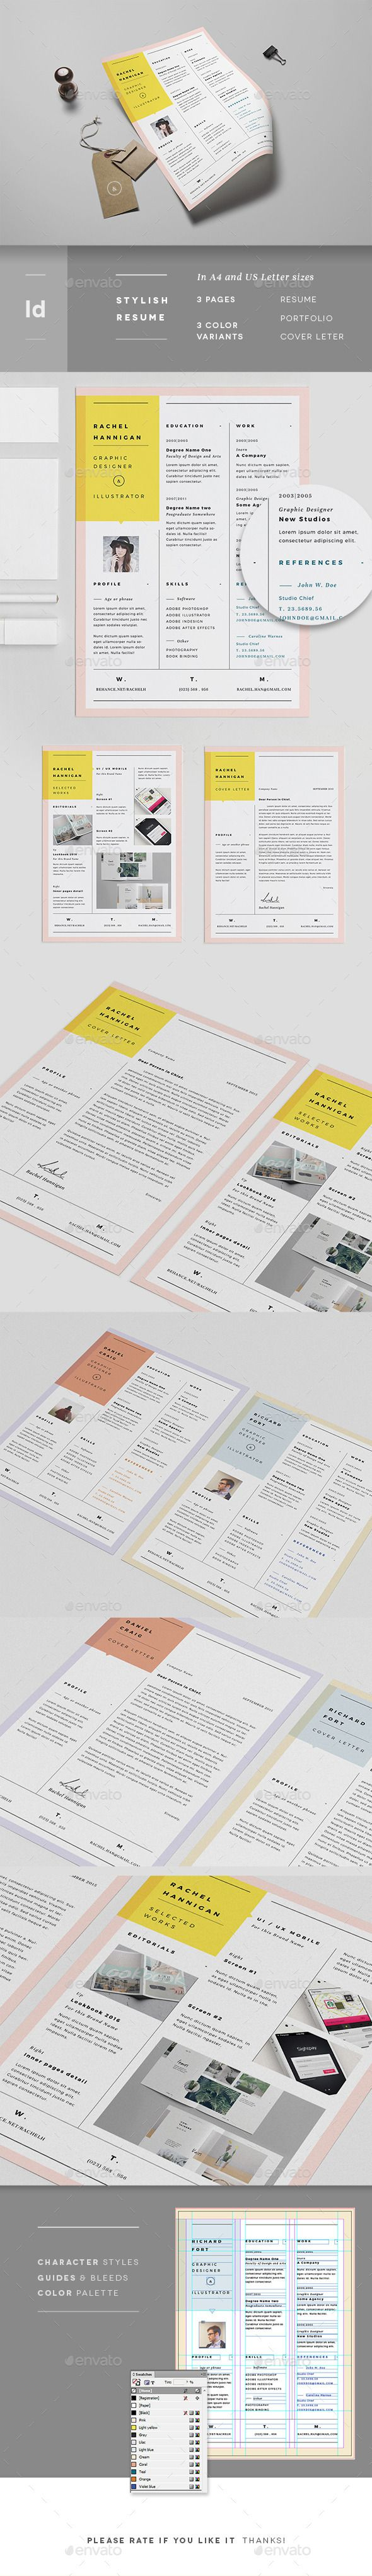 3 Pages Minimal Resume Portfolio & Letter | Curriculums